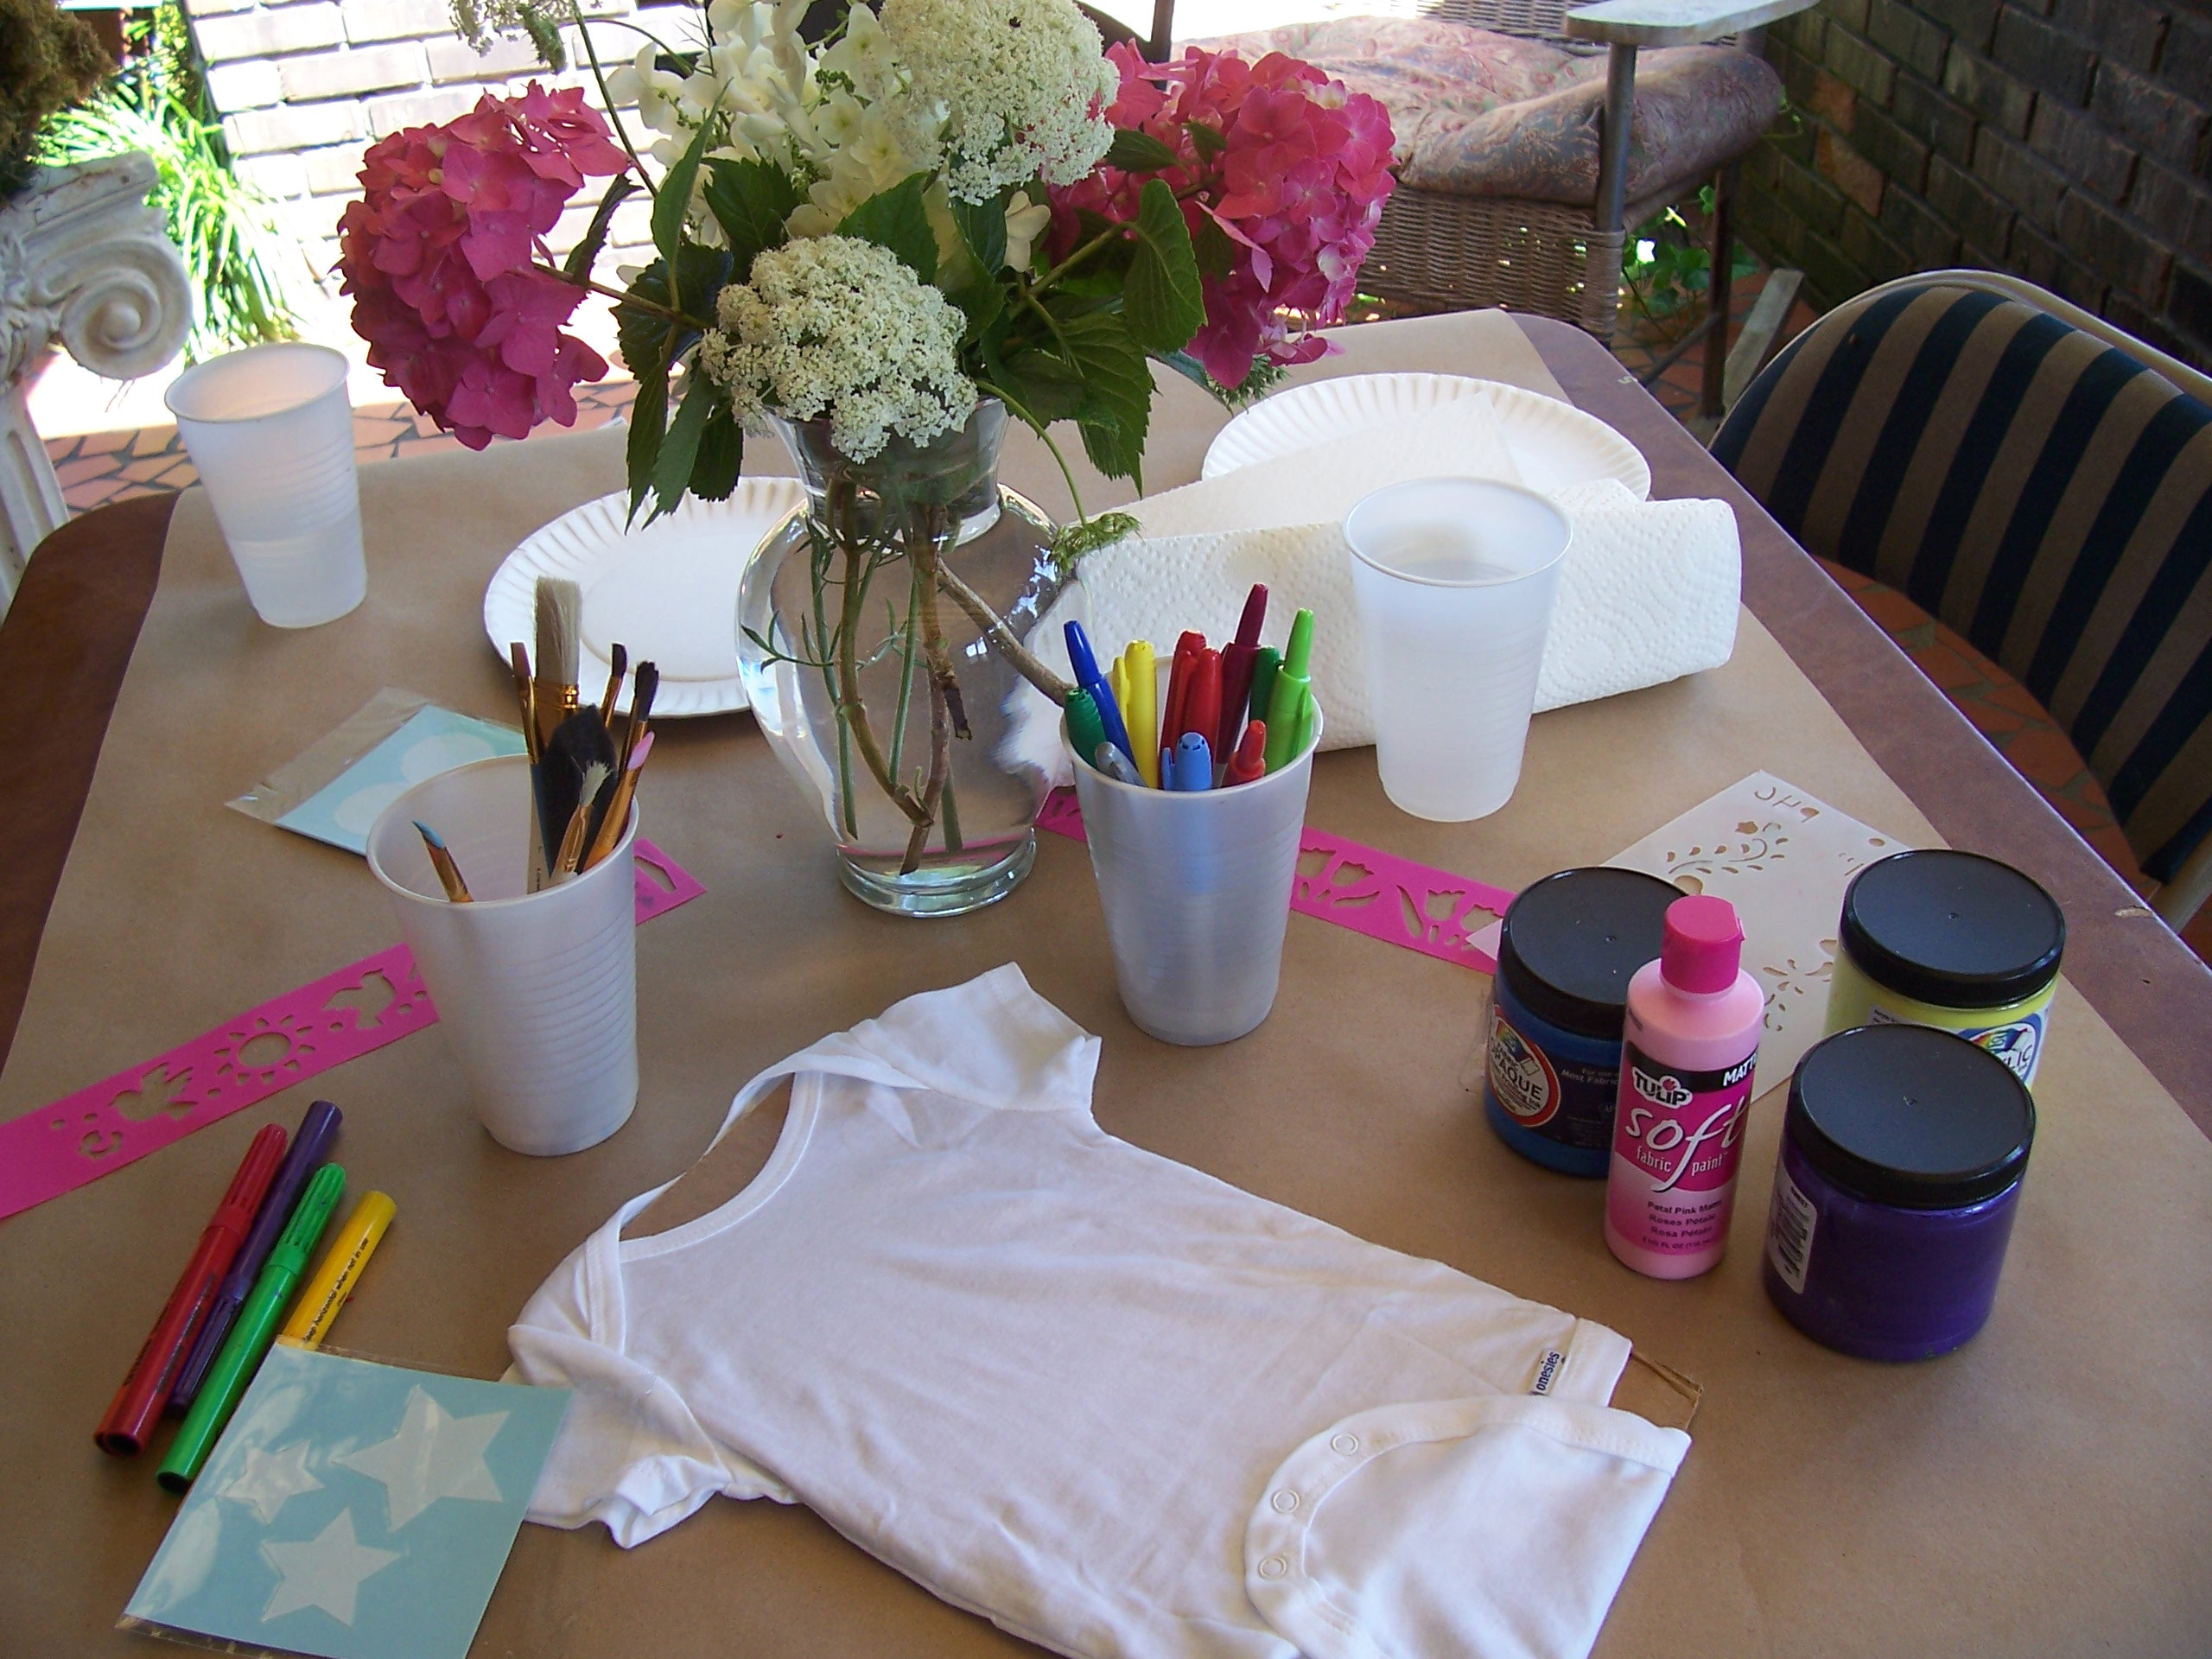 Best ideas about Craft Ideas For Baby Shower Gifts . Save or Pin 301 Moved Permanently Now.